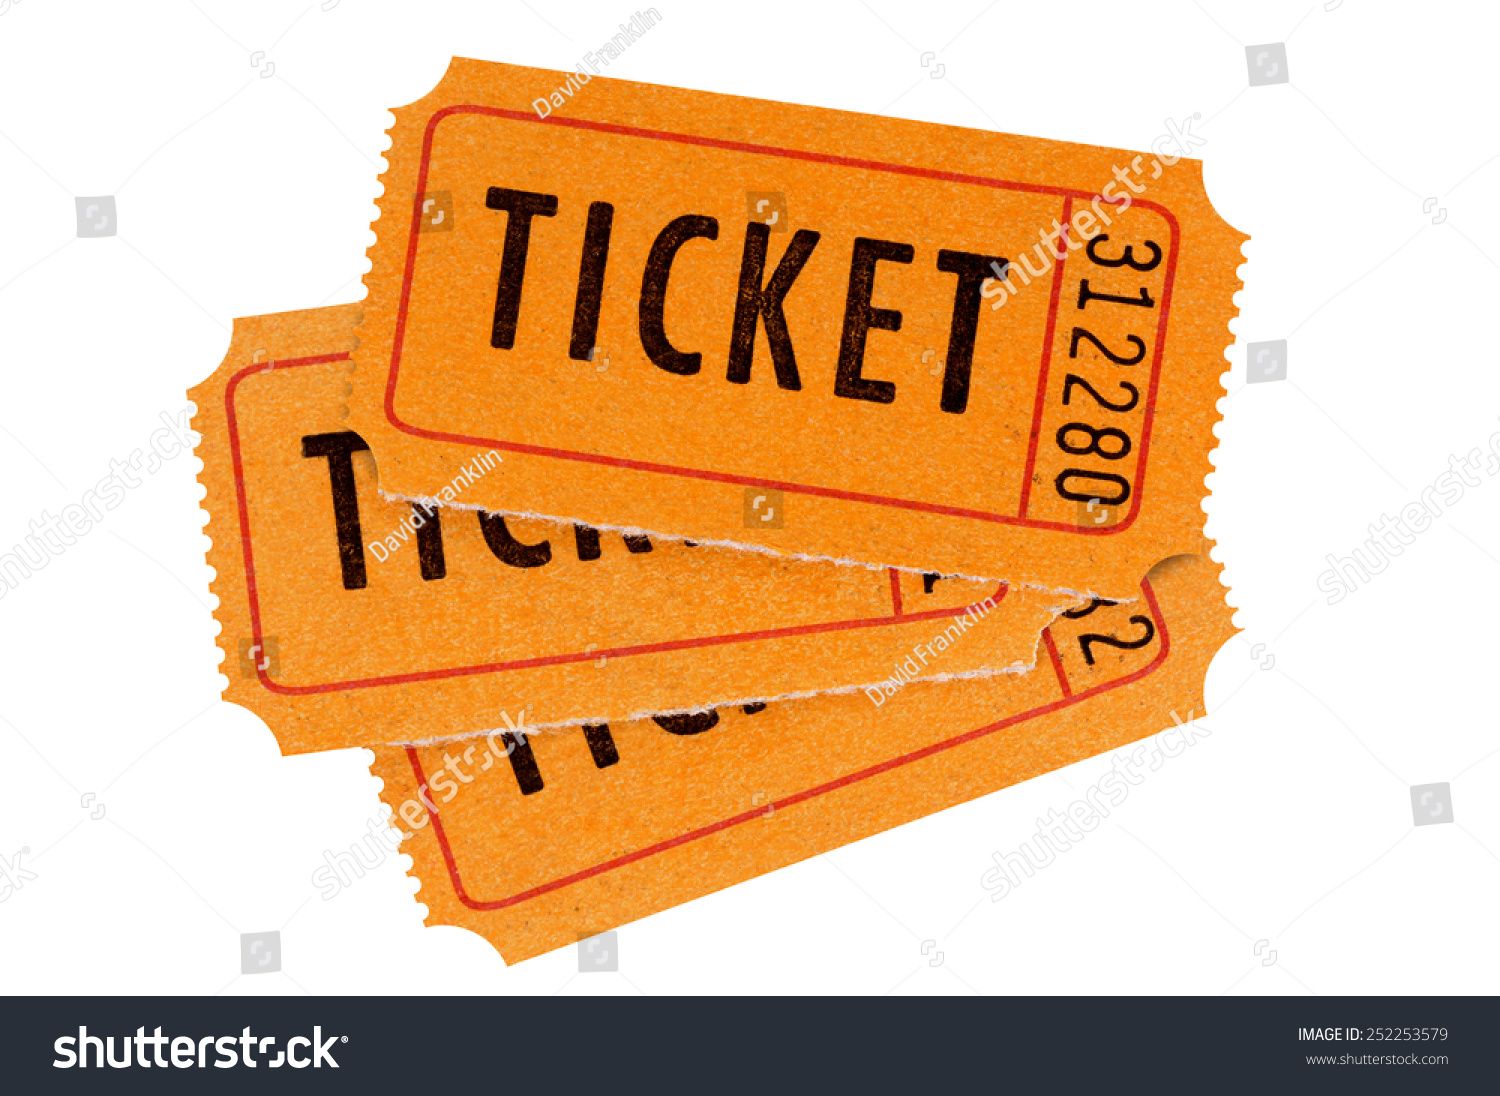 raffle ticket fan shape stack three stock photo 252253579 raffle ticket fan shape stack of three orange raffle or movie tickets isolated on white